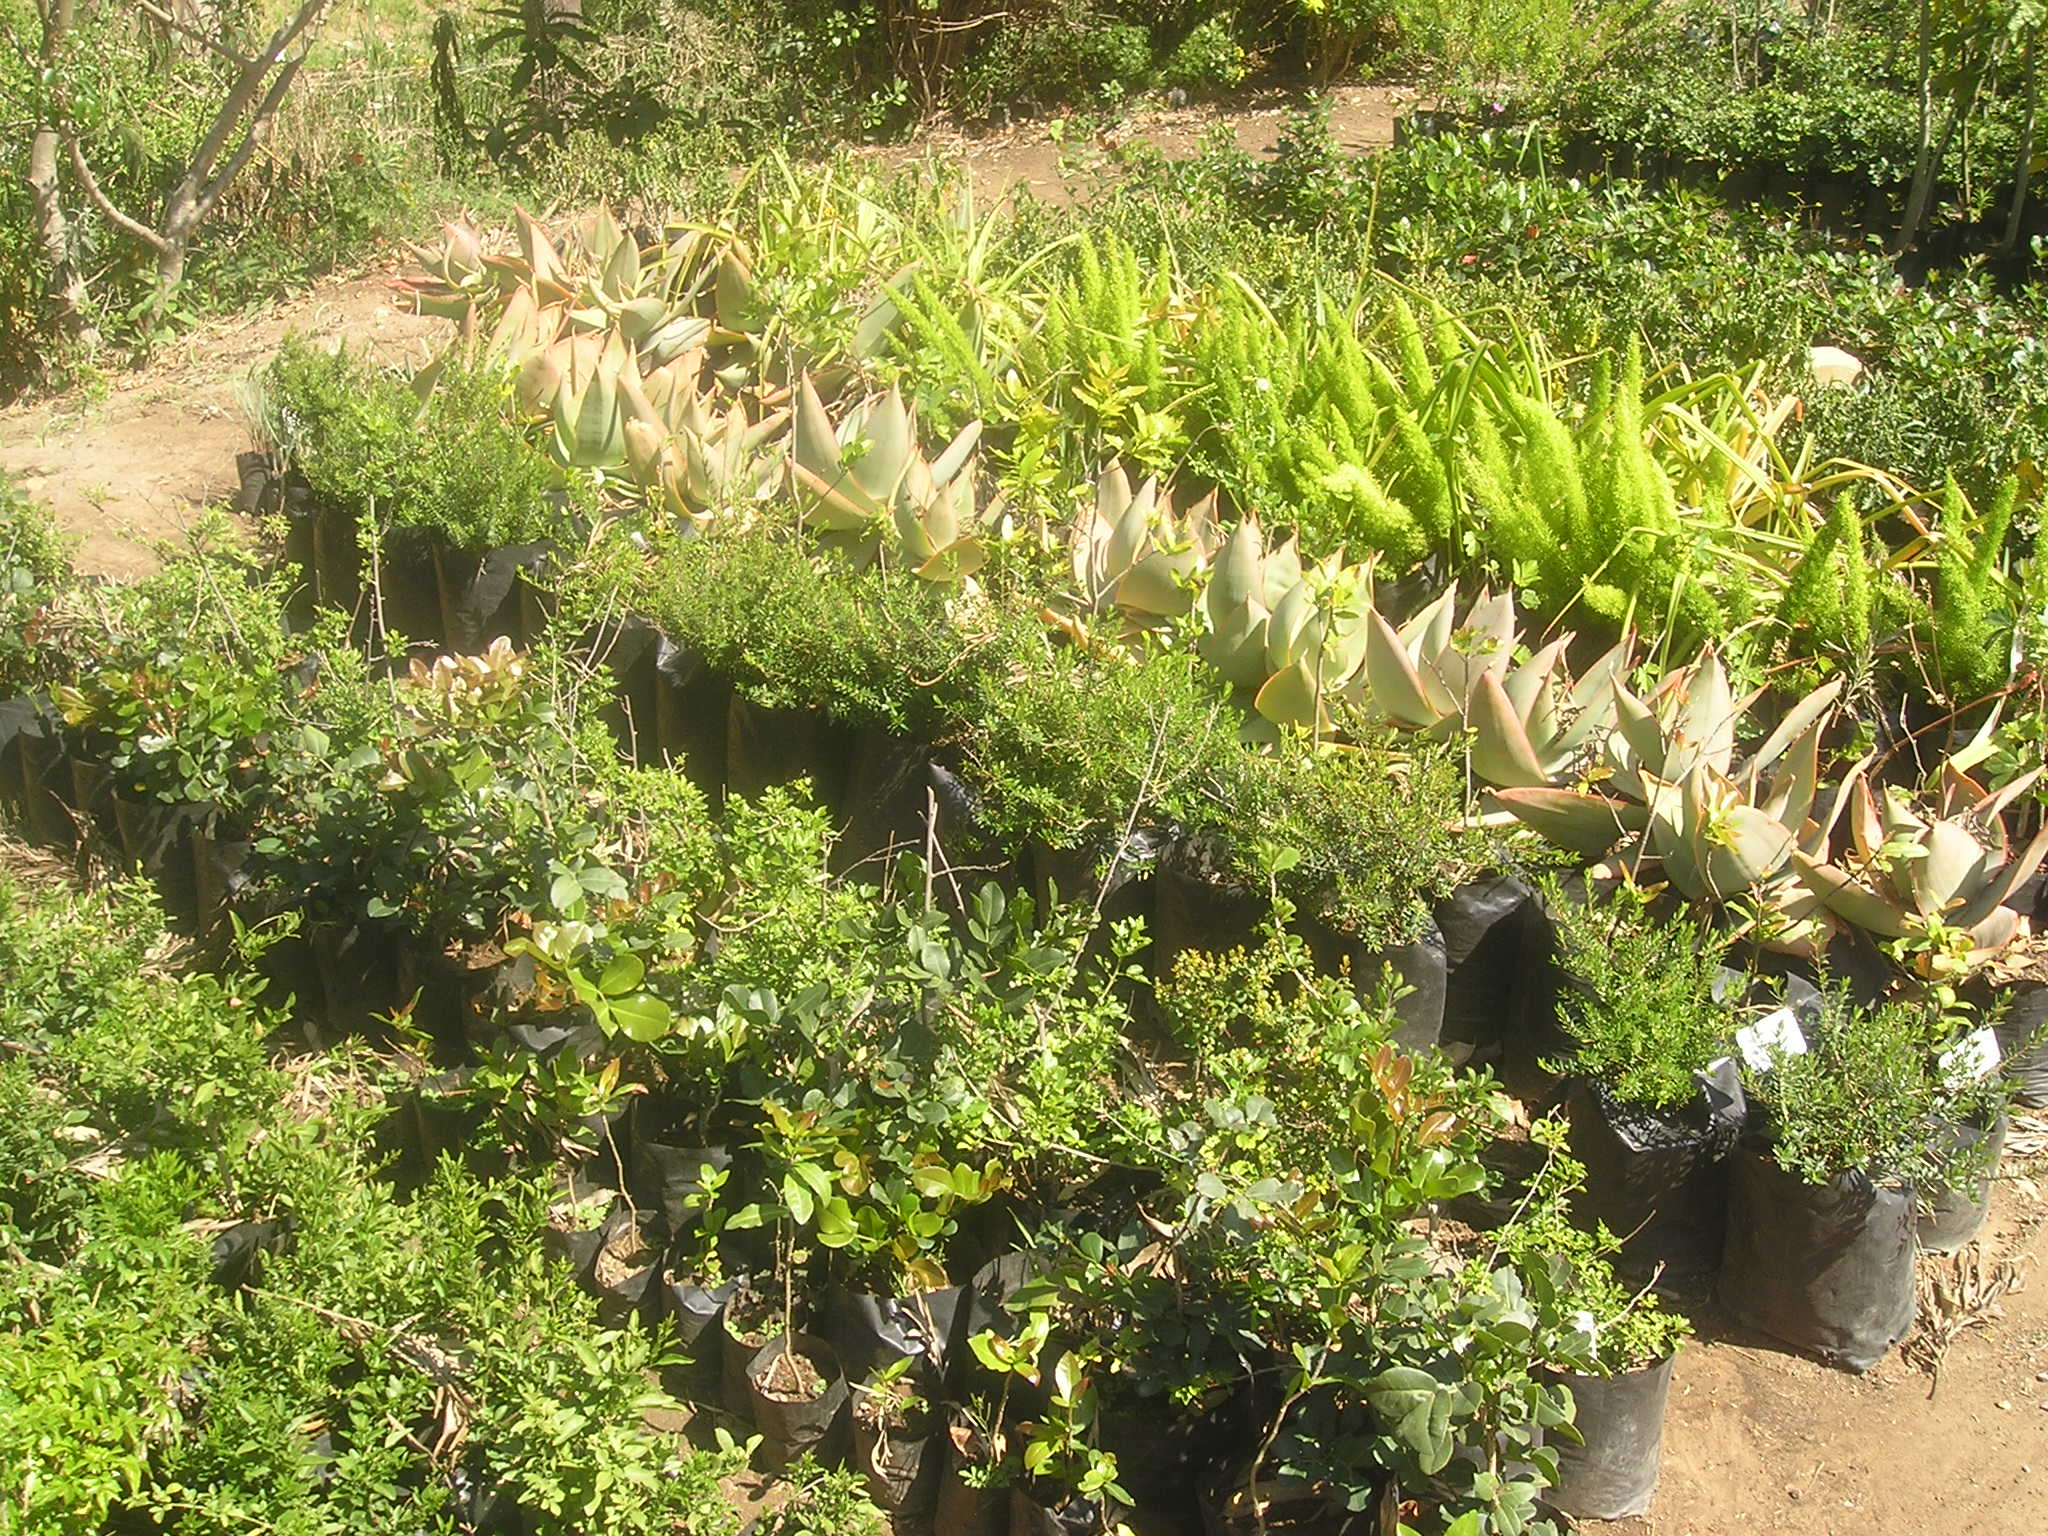 Cultivation of culturally and medicinally important species to protect wild populations from over-harvesting. Africulture Project.